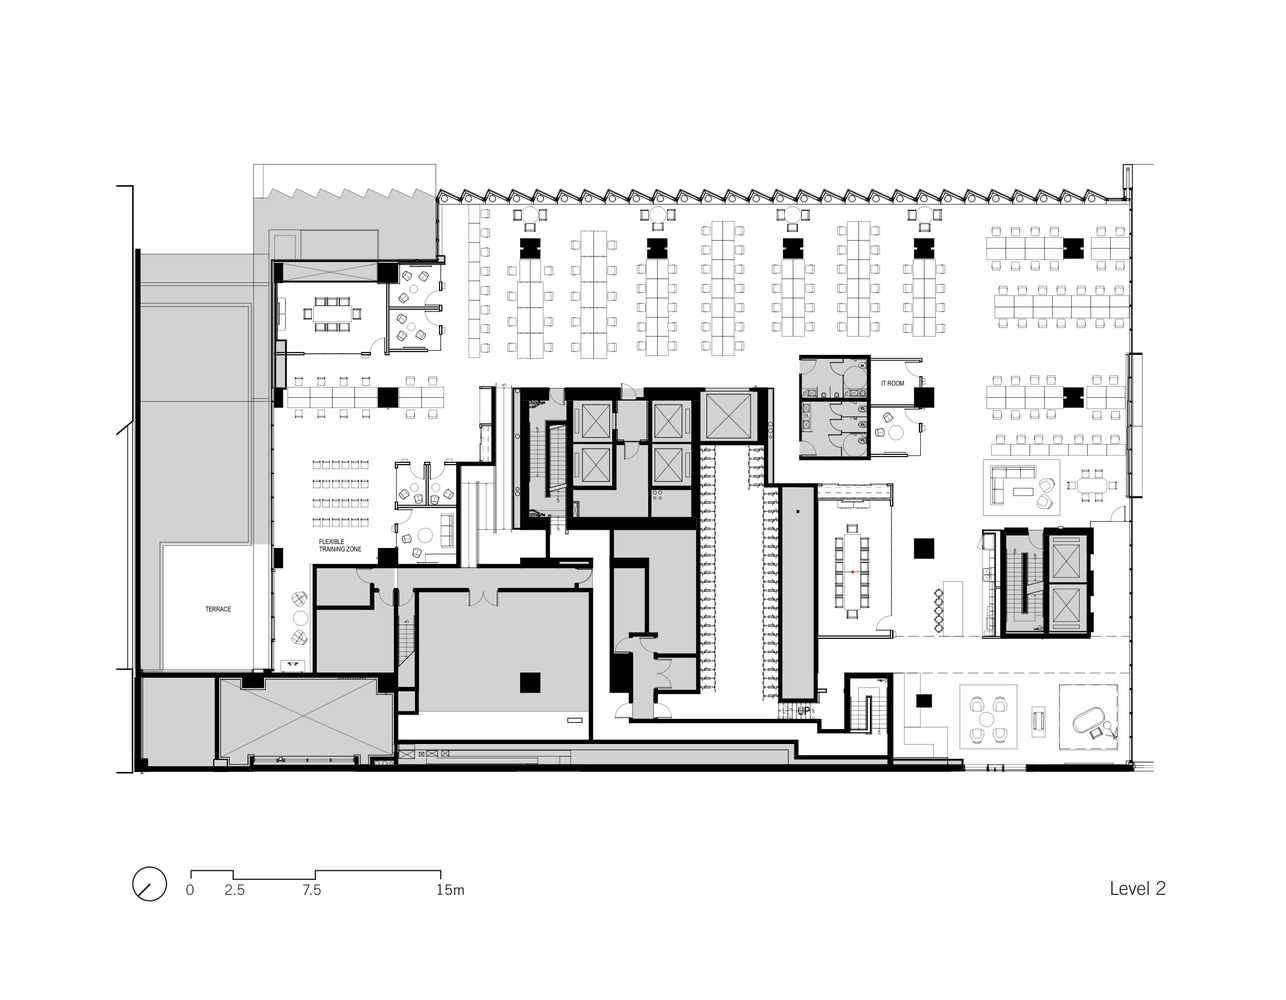 Bench Accounting Office Interiors / Perkins+Will. First Floor Plan